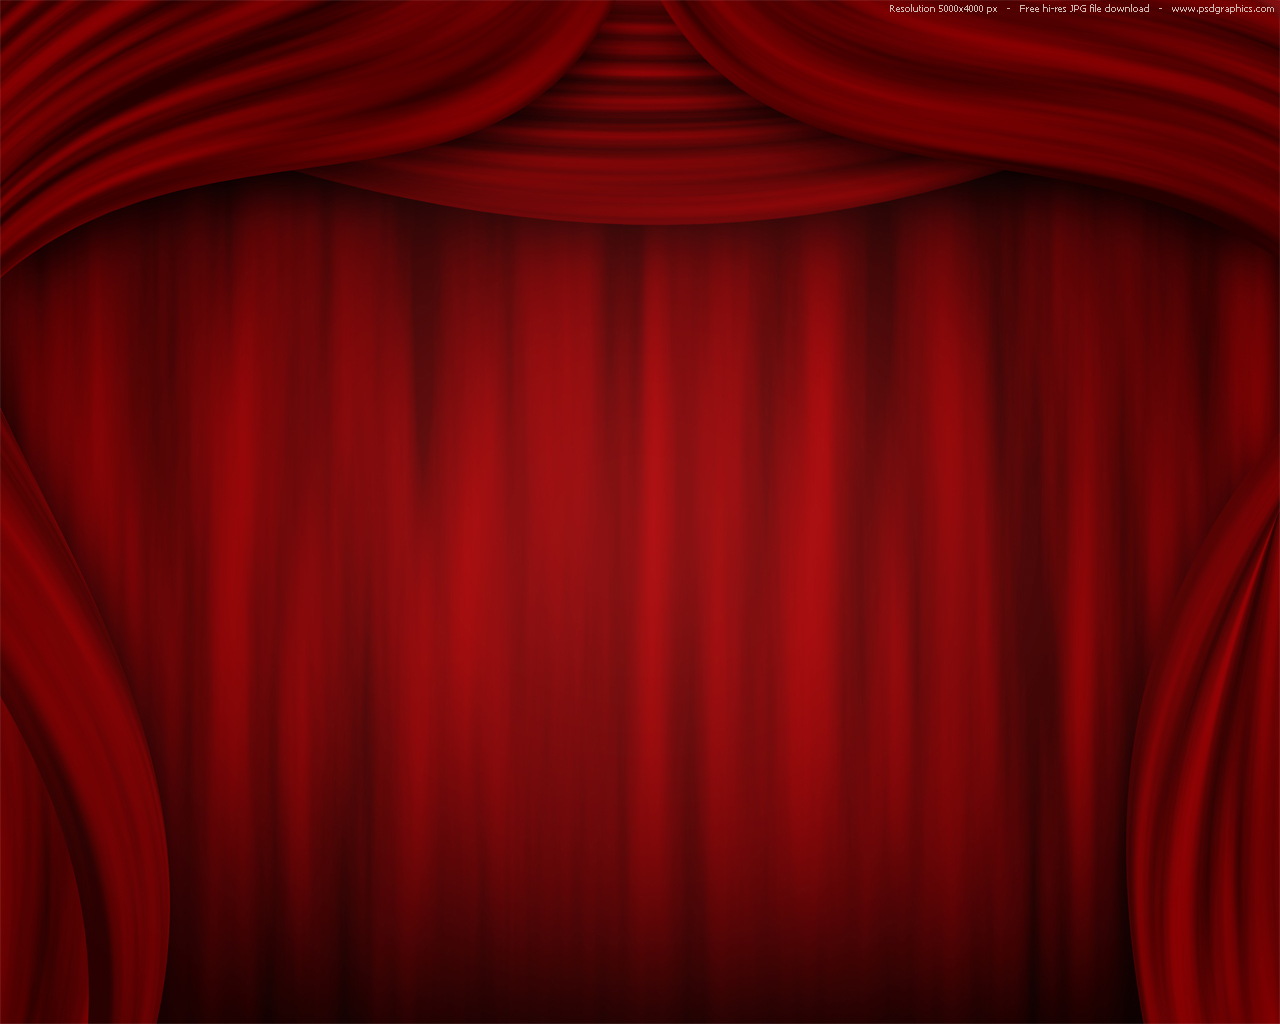 Free psd store red curtain background - Red Curtain Background Theatre Stage Psdgraphics